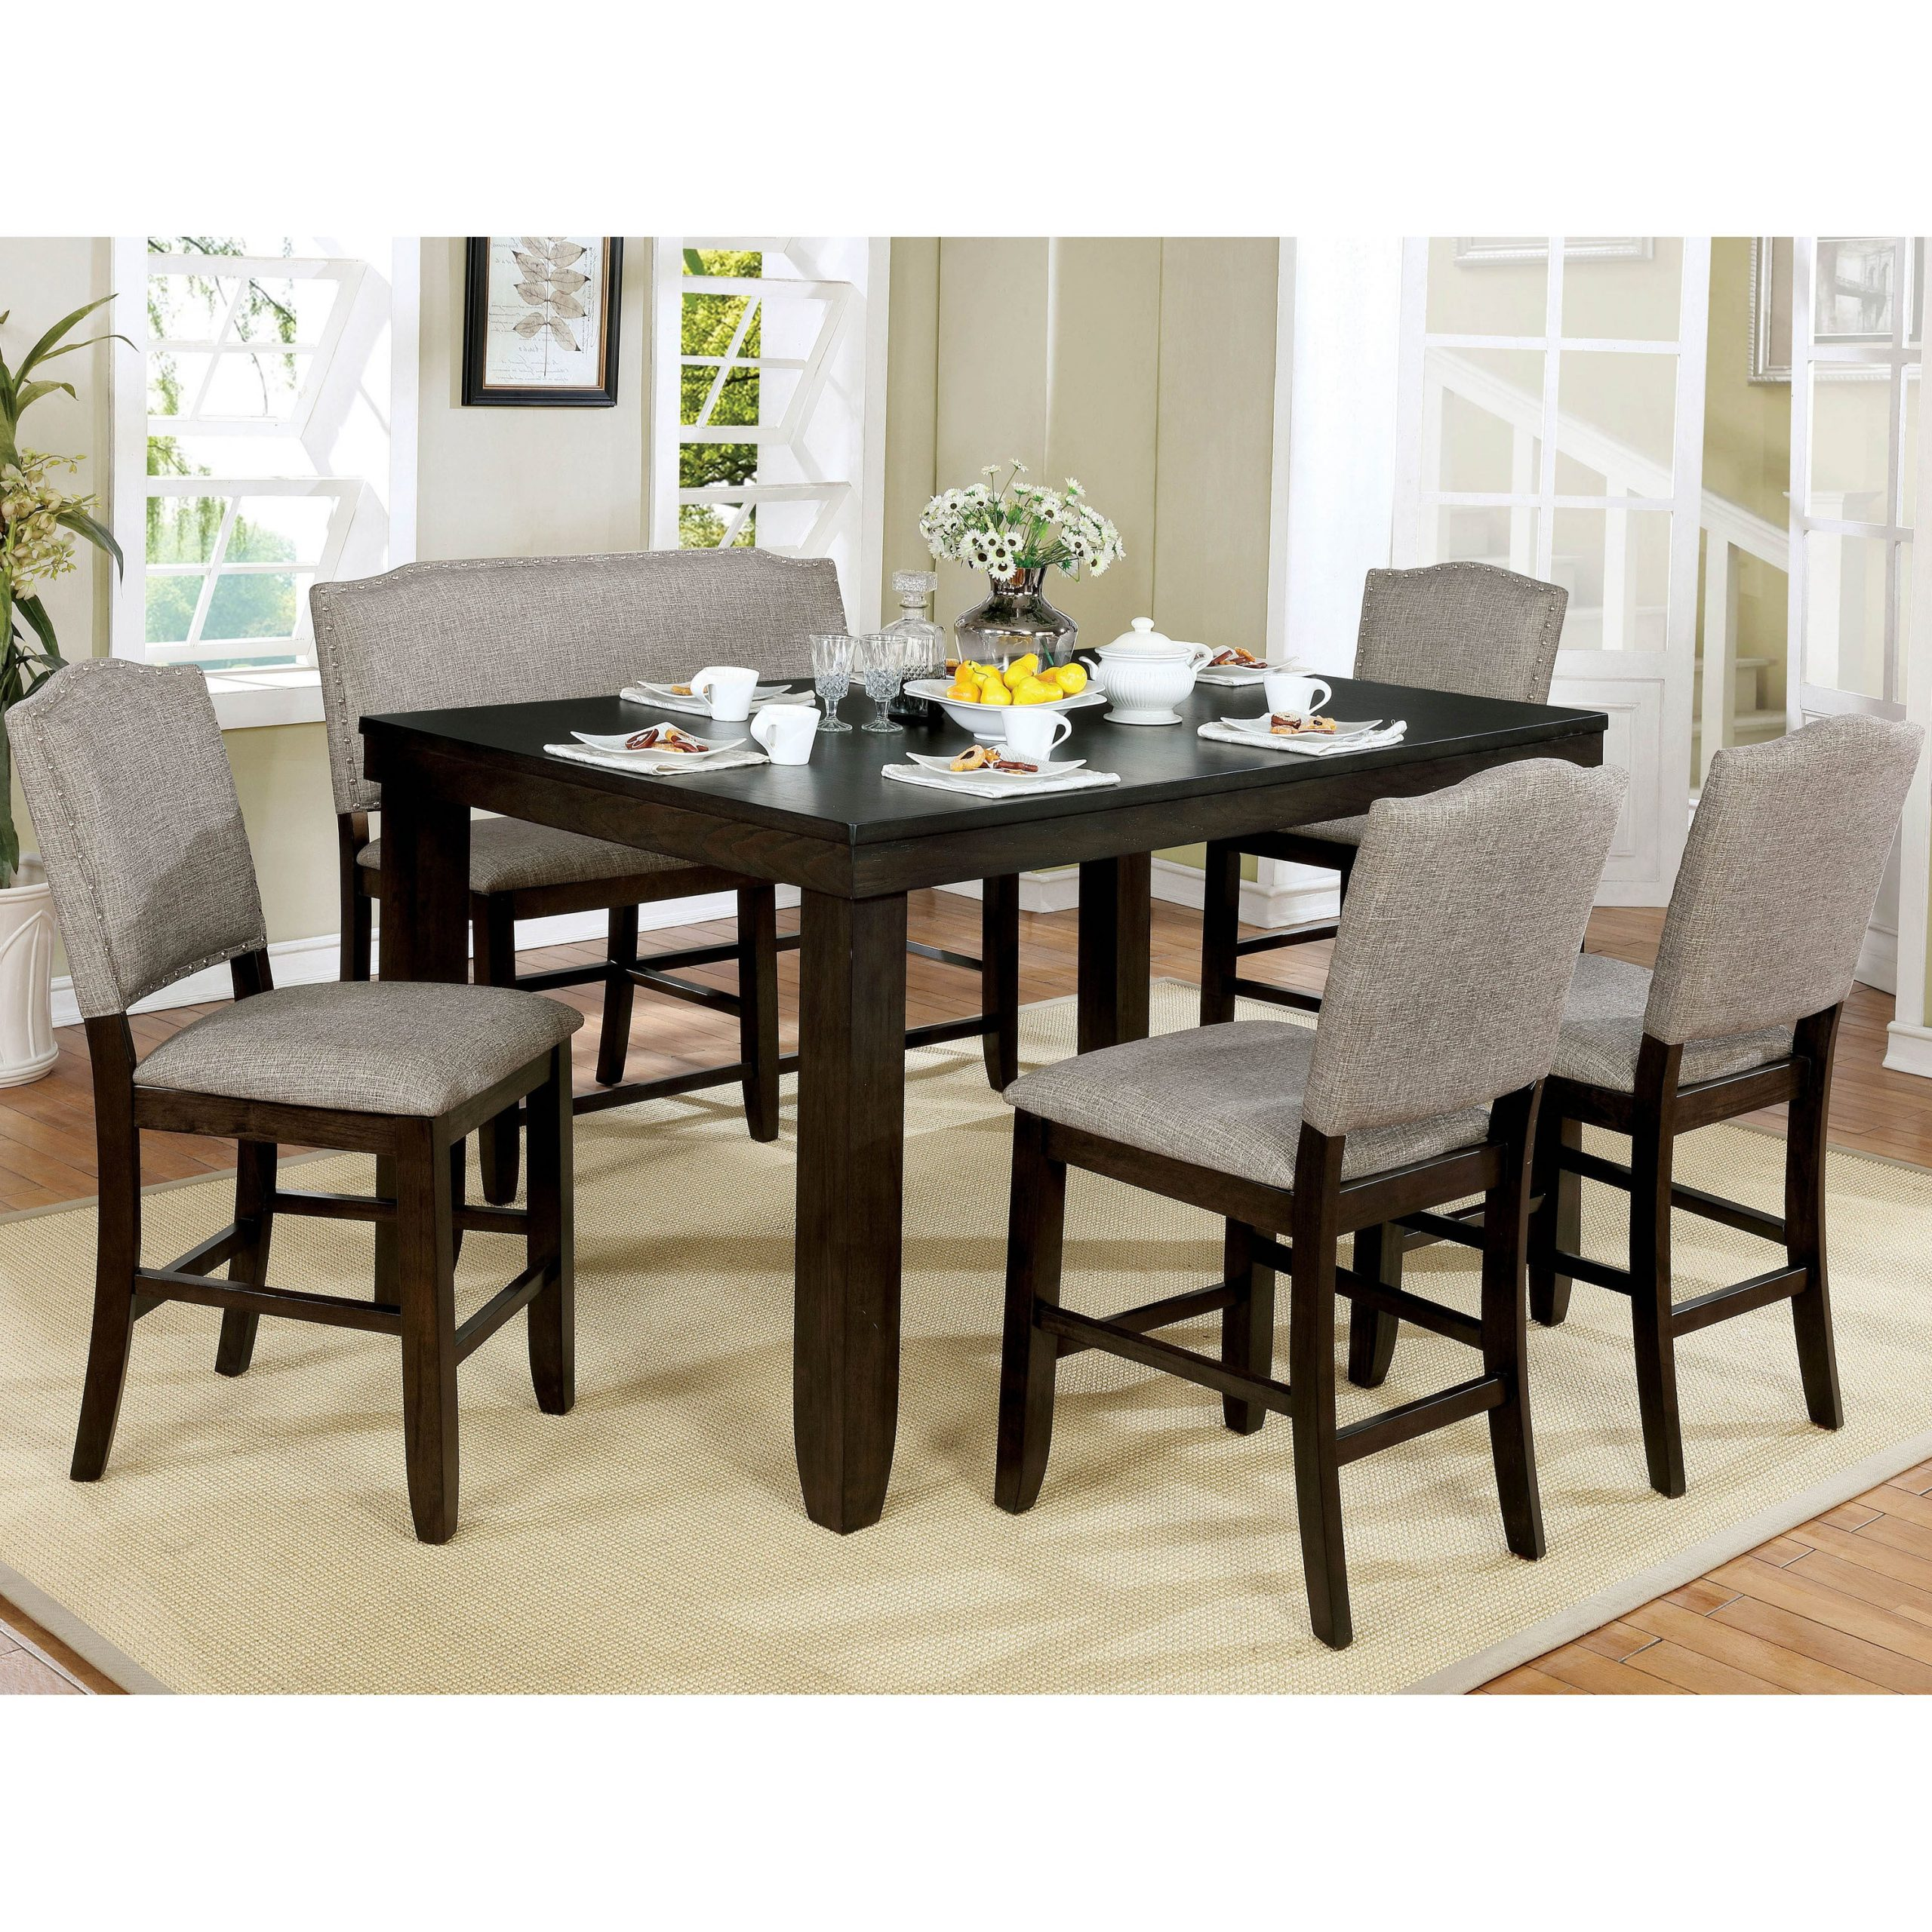 Newest Furniture Of America Davenport Walnut 6 Piece Counter Dining Set Inside Transitional 6 Seating Casual Dining Tables (View 17 of 30)